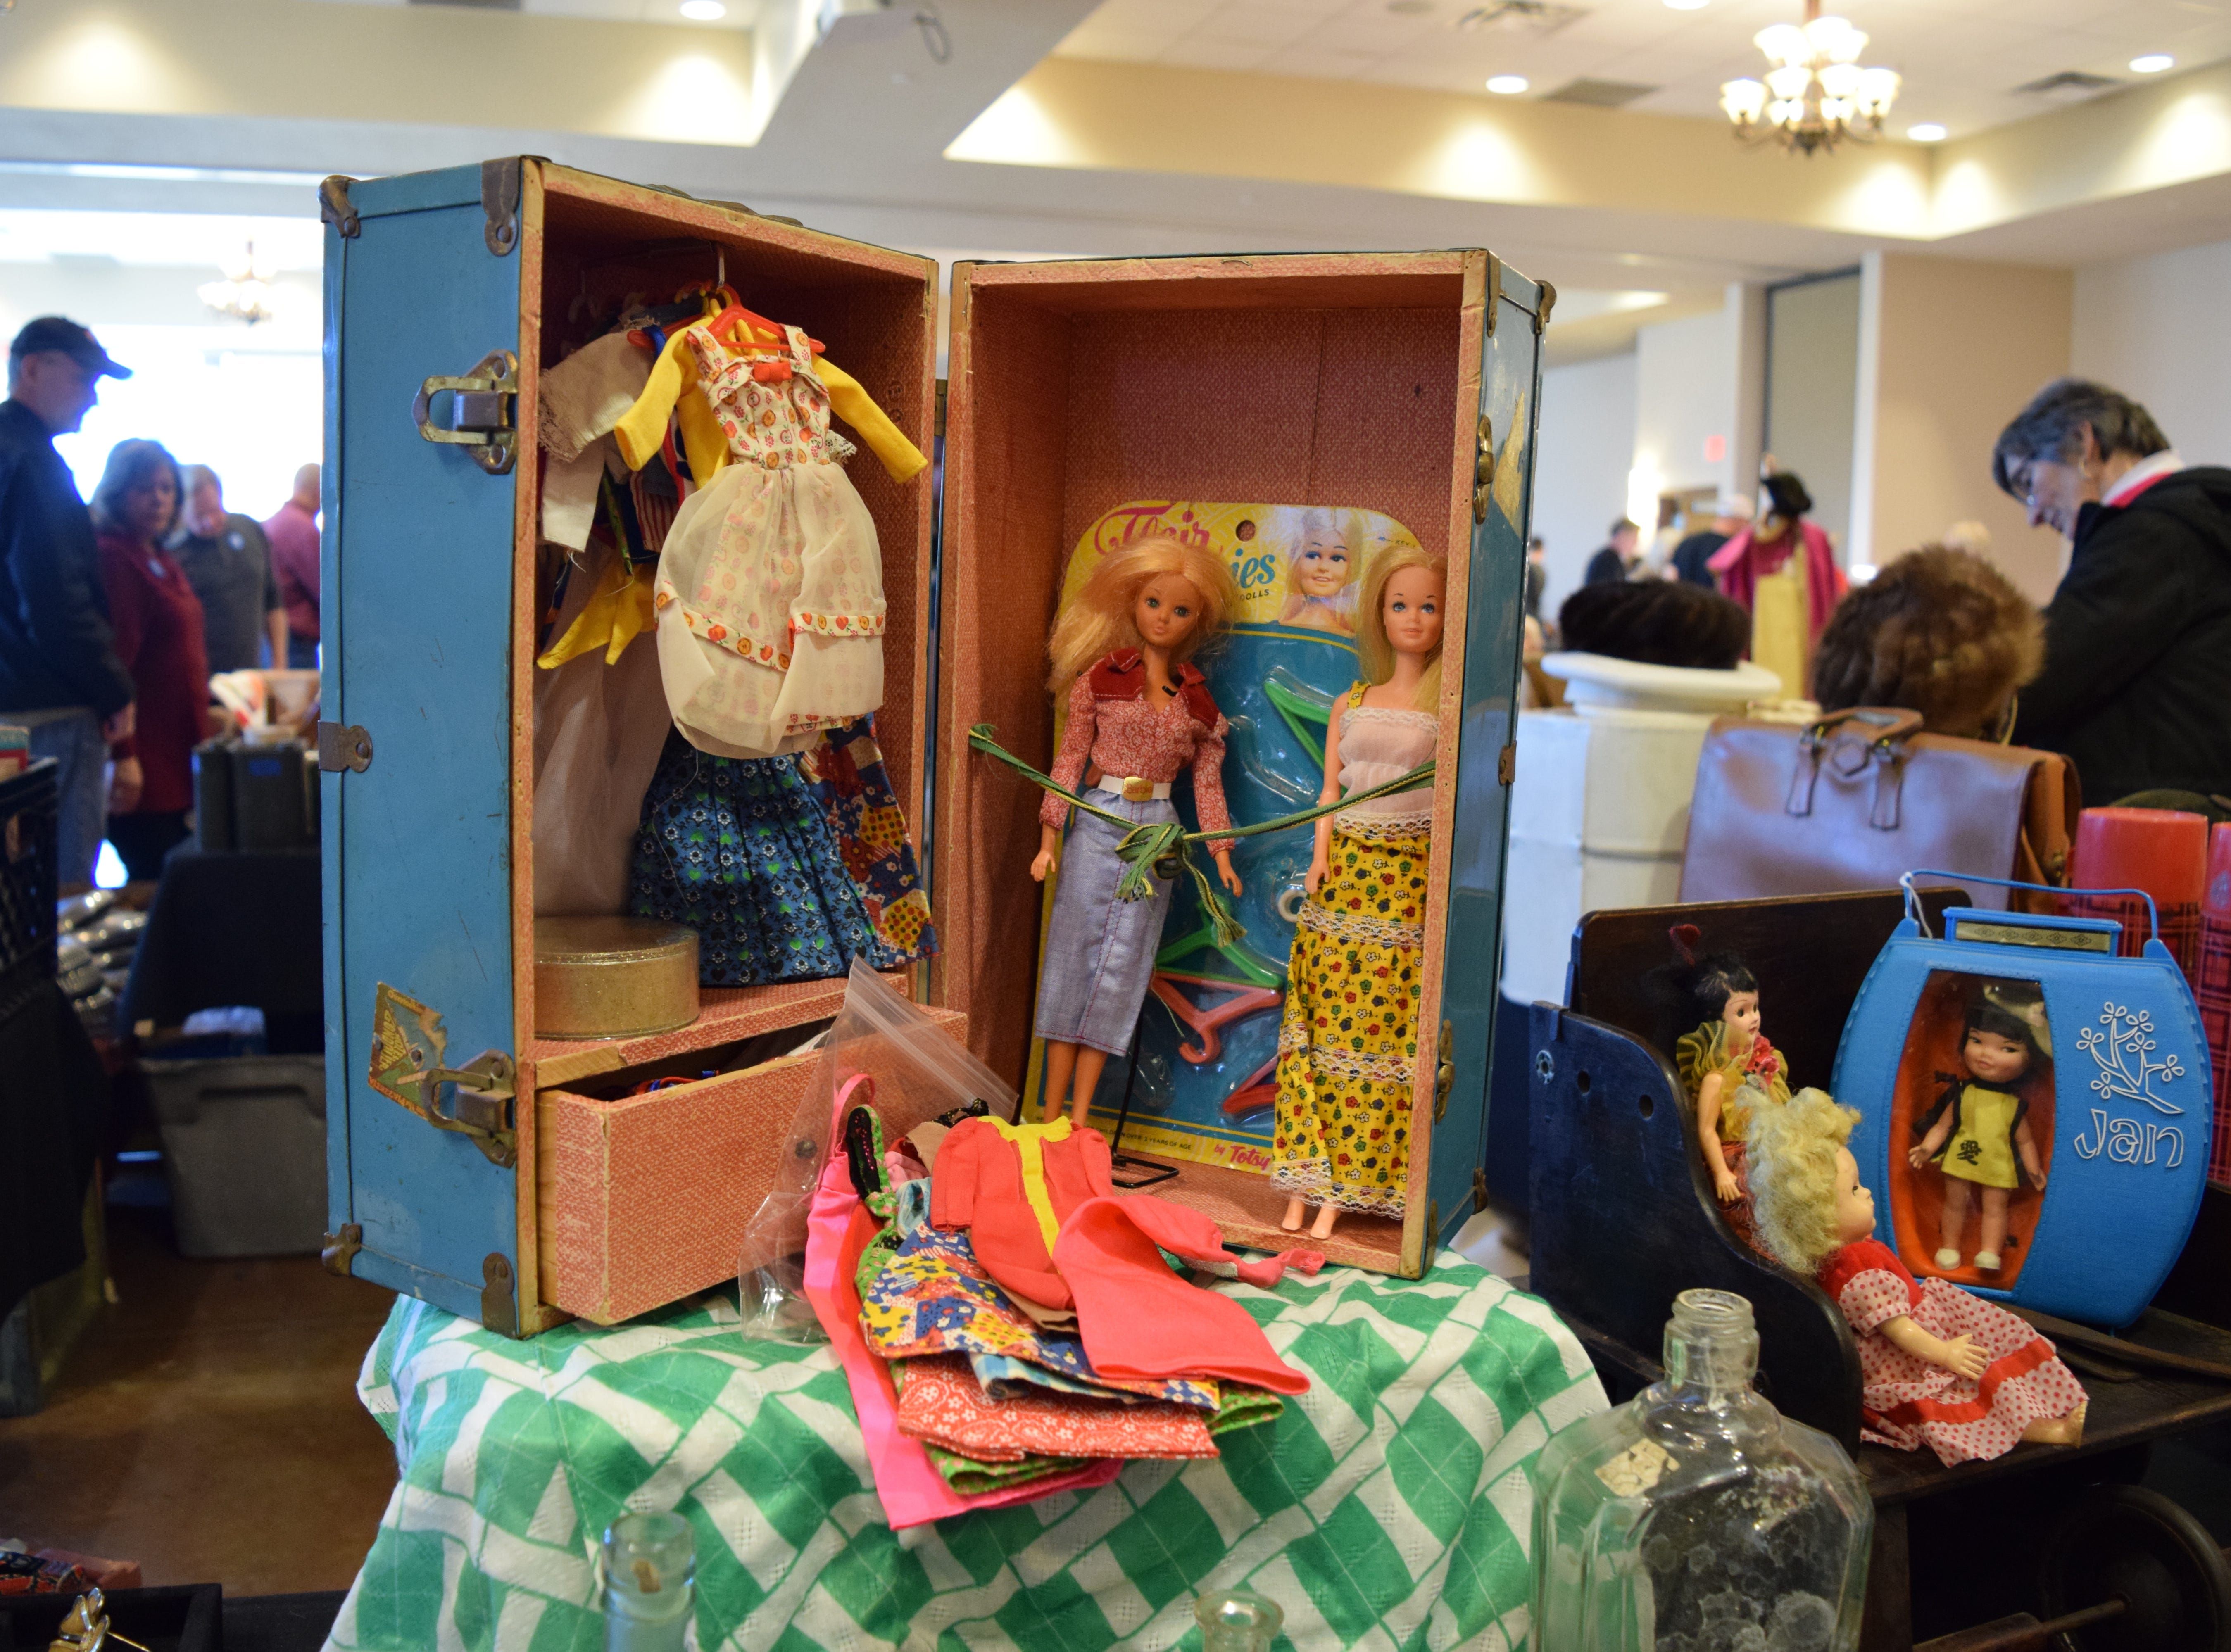 This Barbie collection from the 1970s — stored in a 1960s metal doll trunk — induces serious childhood nostalgia. The Barbie brand of dolls made its debut in March of 1959 at the American International Toy Fair in New York, meaning Barbie will turn 60 years old in 2019. Barbie's creator, Ruth Handler, was originally inspired by the German doll from the 50s and 60s called Bild Lilli. — Antiques Treasures Show at the Farm and Ranch Heritage Museum, Jan. 26, 2019.